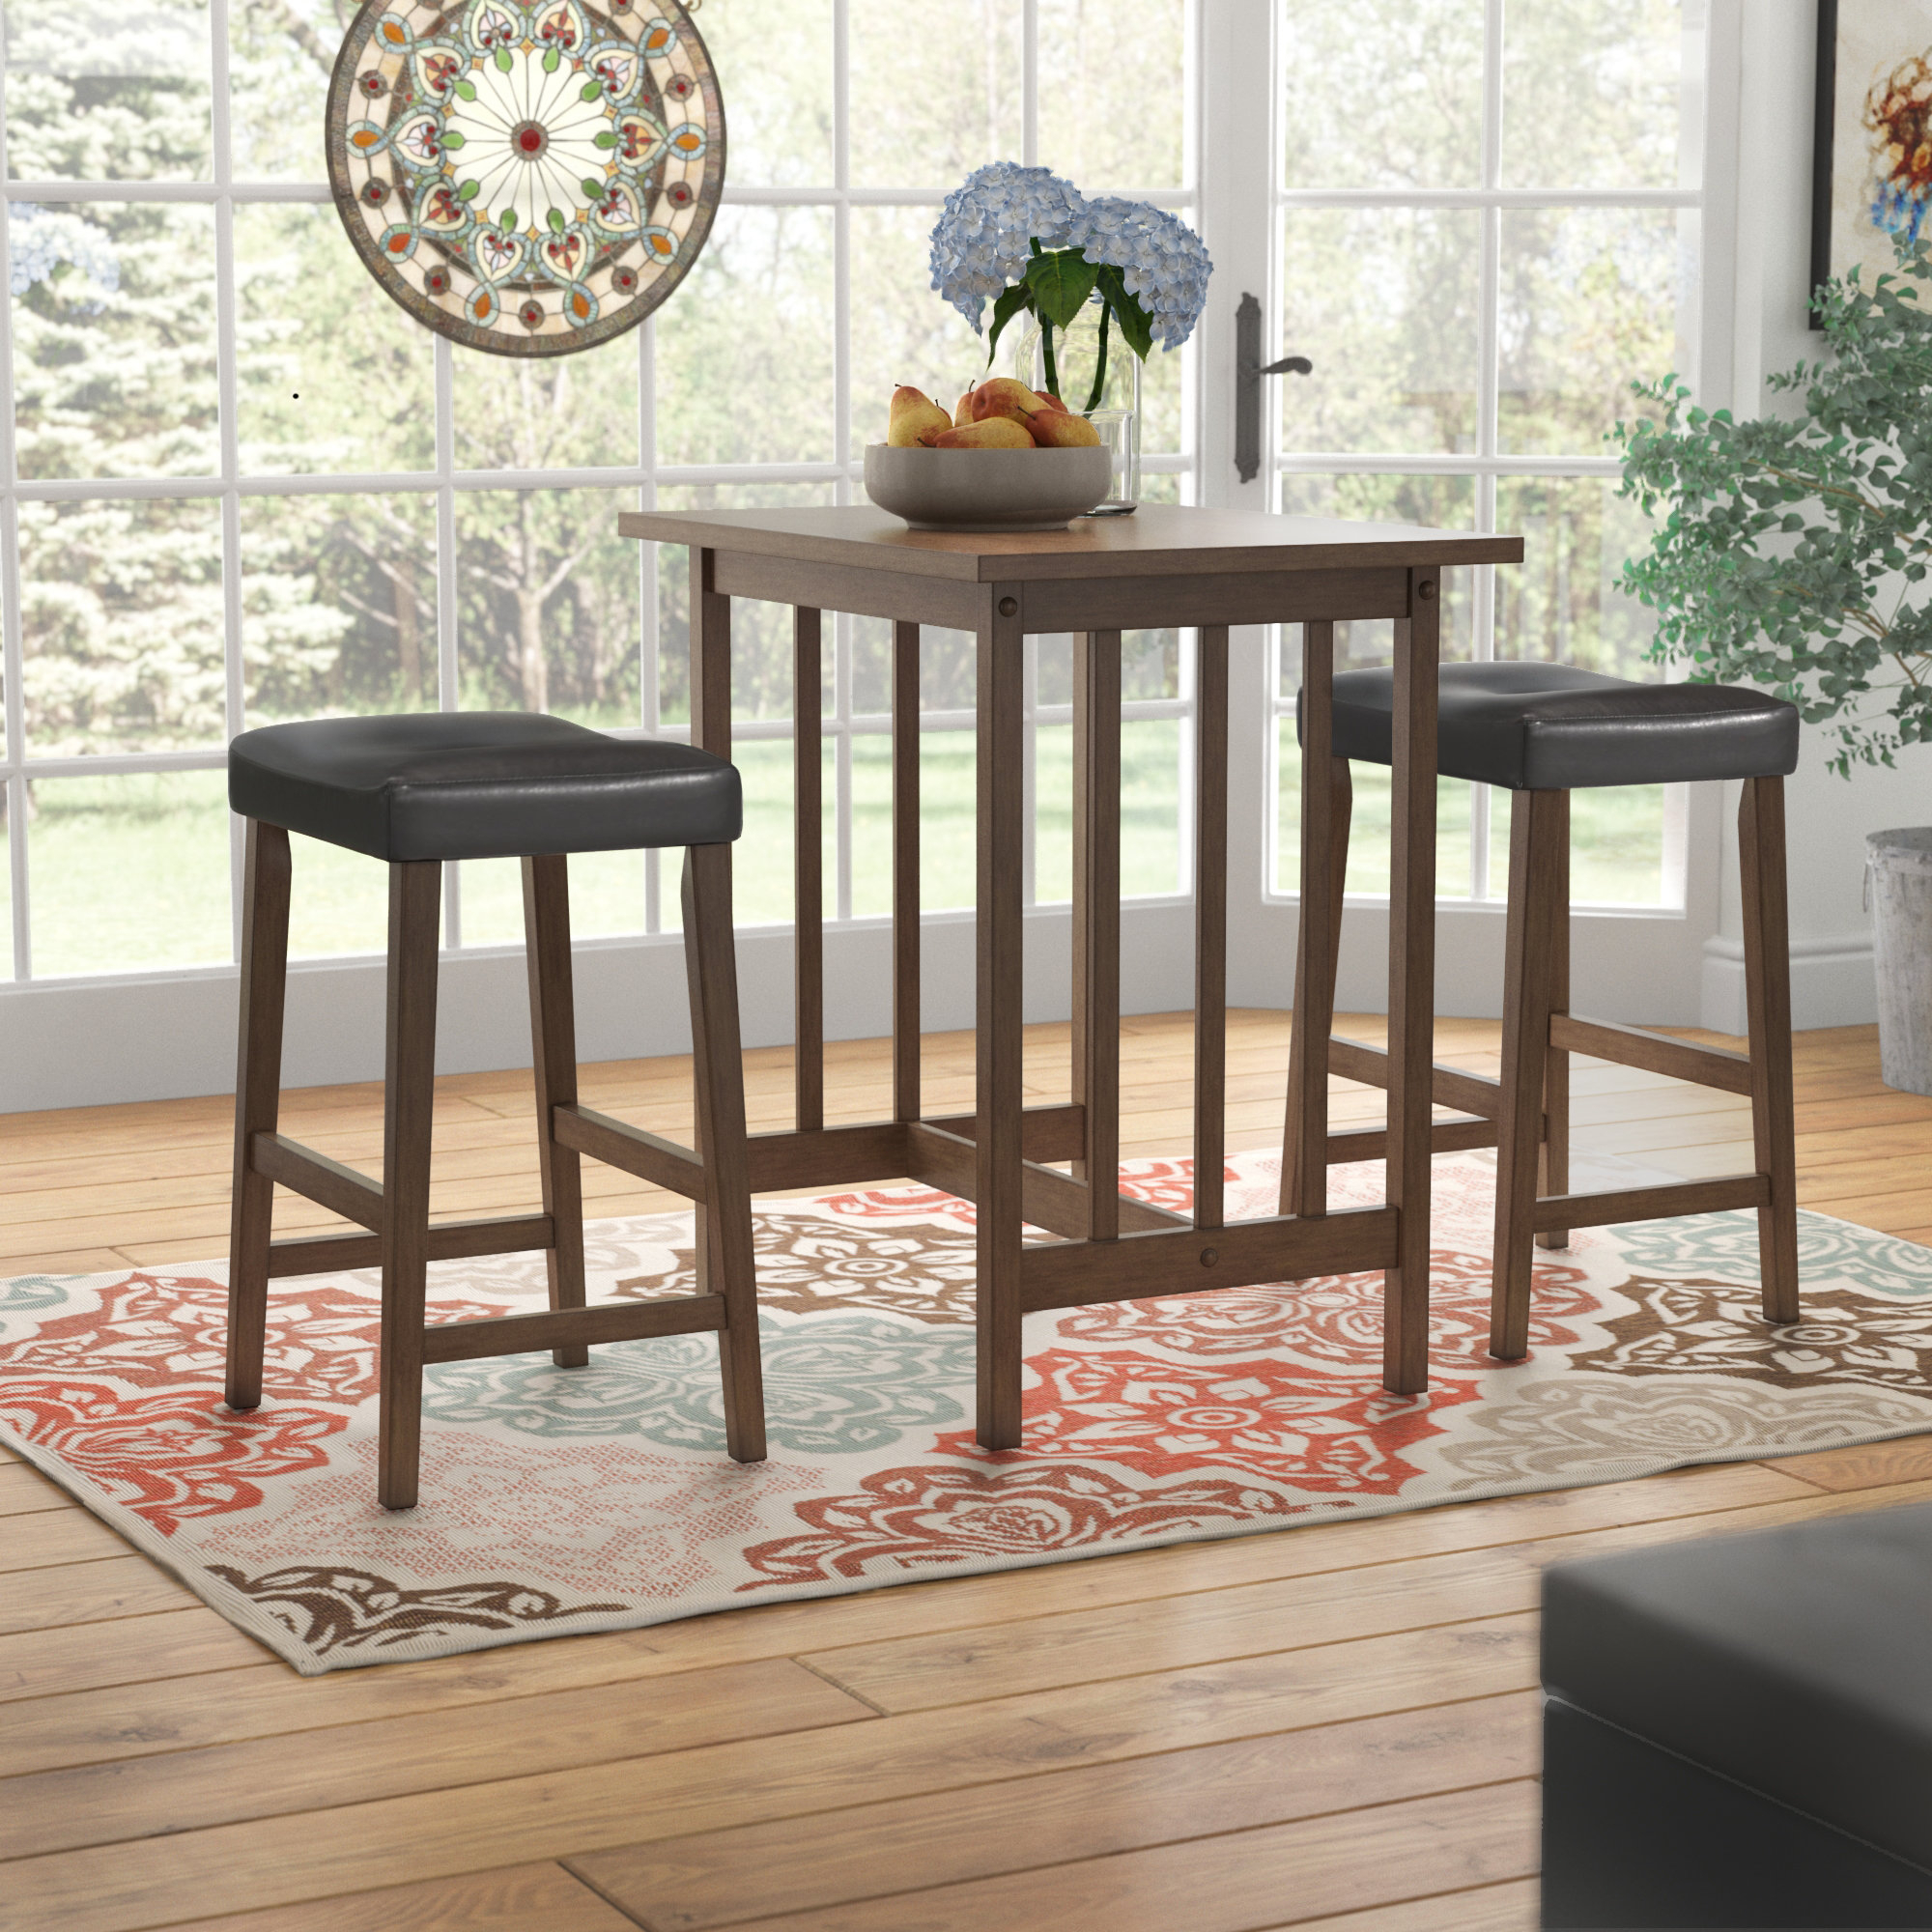 Hood Canal 3 Piece Dining Set Pertaining To Most Up To Date Hood Canal 3 Piece Dining Sets (Photo 1 of 20)